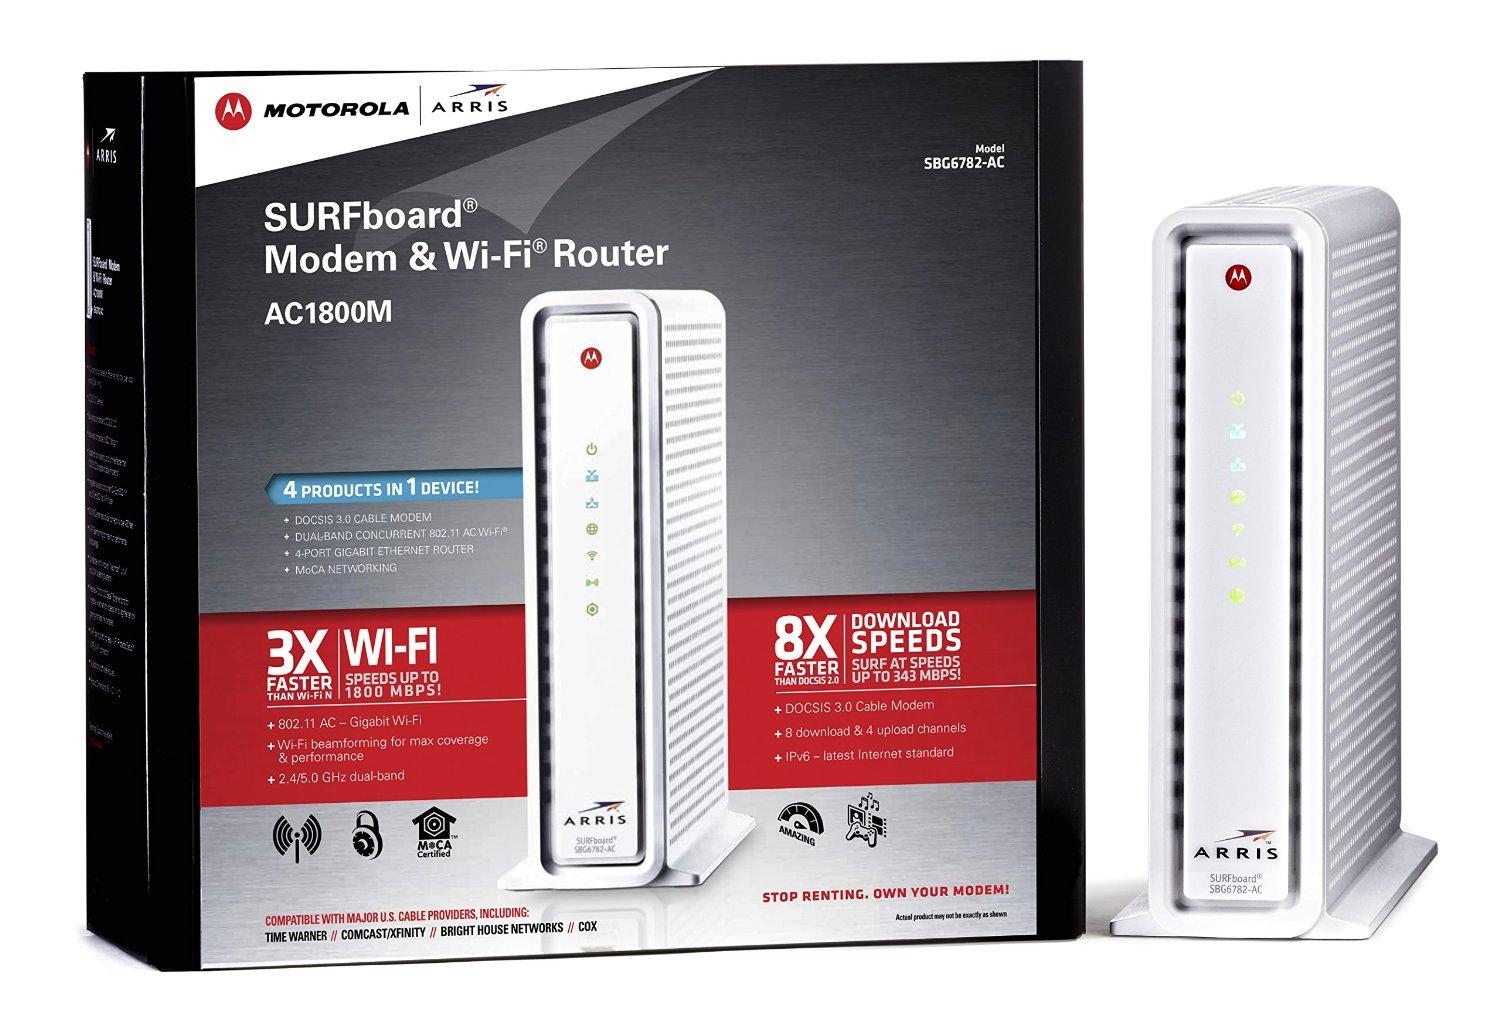 $88.04 & Free Shipping Refurbished ARRIS SURFboard SBG6782AC DOCSIS 3.0 Cable Modem/ Wi-Fi AC1750 Router